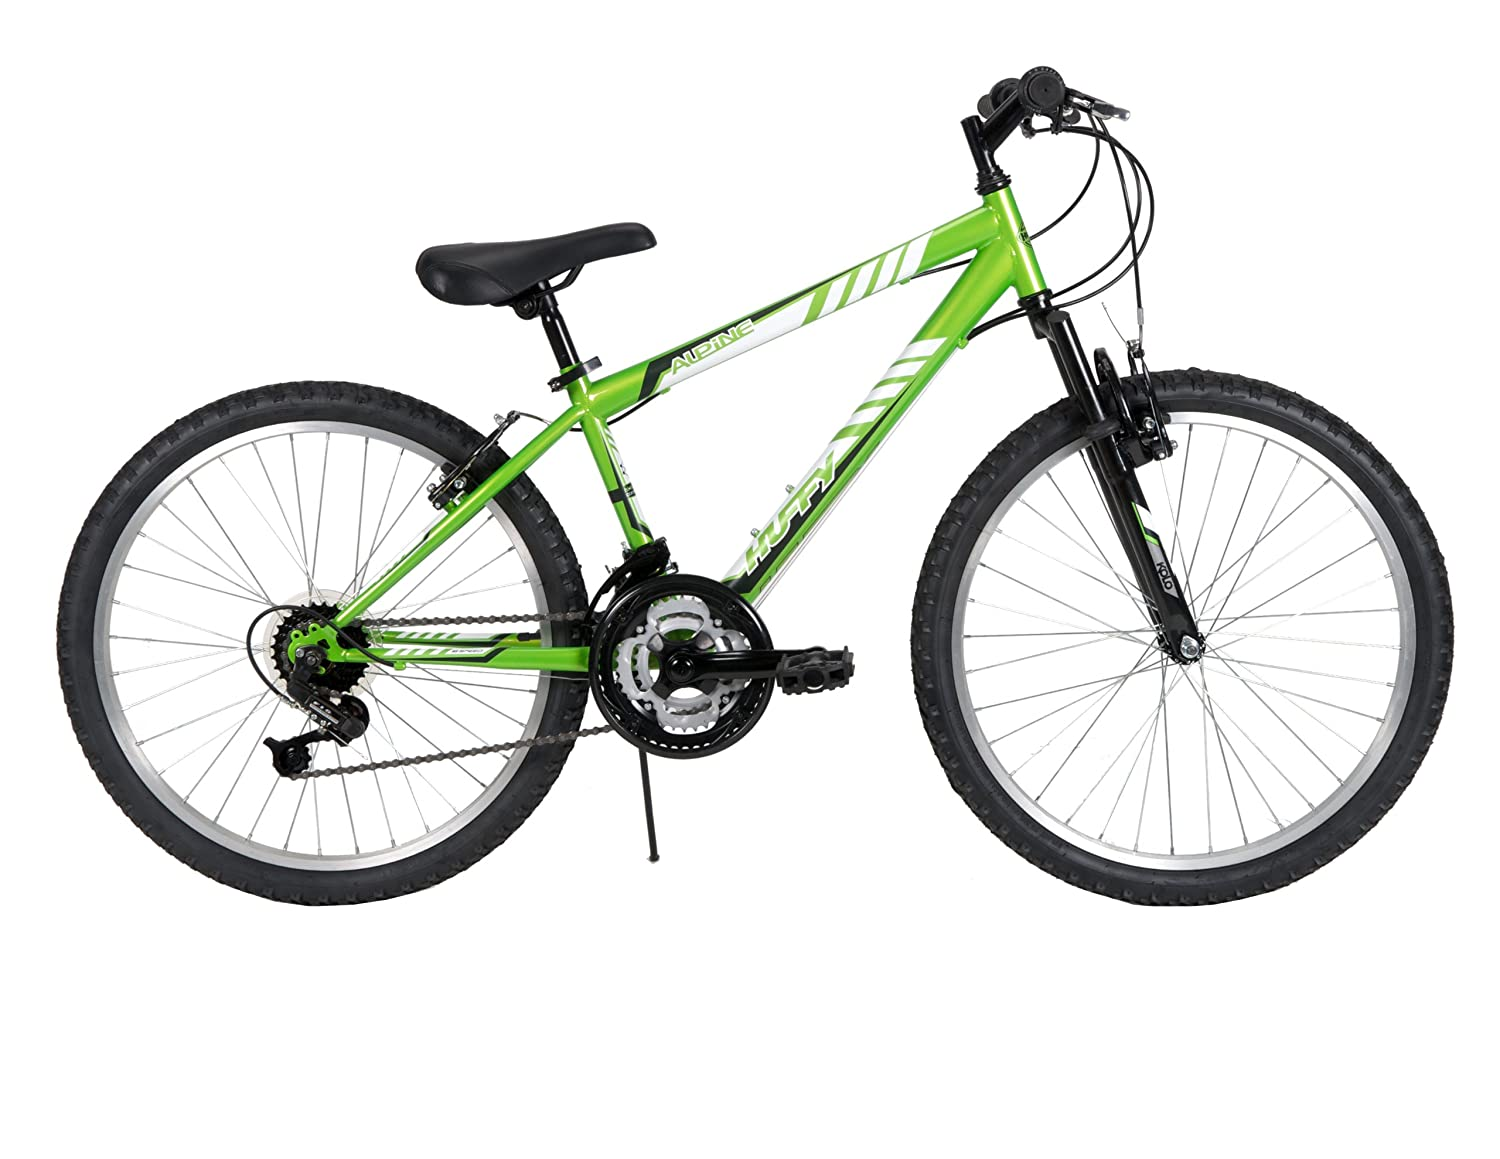 Bikes For Boys 24 Green Bike Acid Green Inch